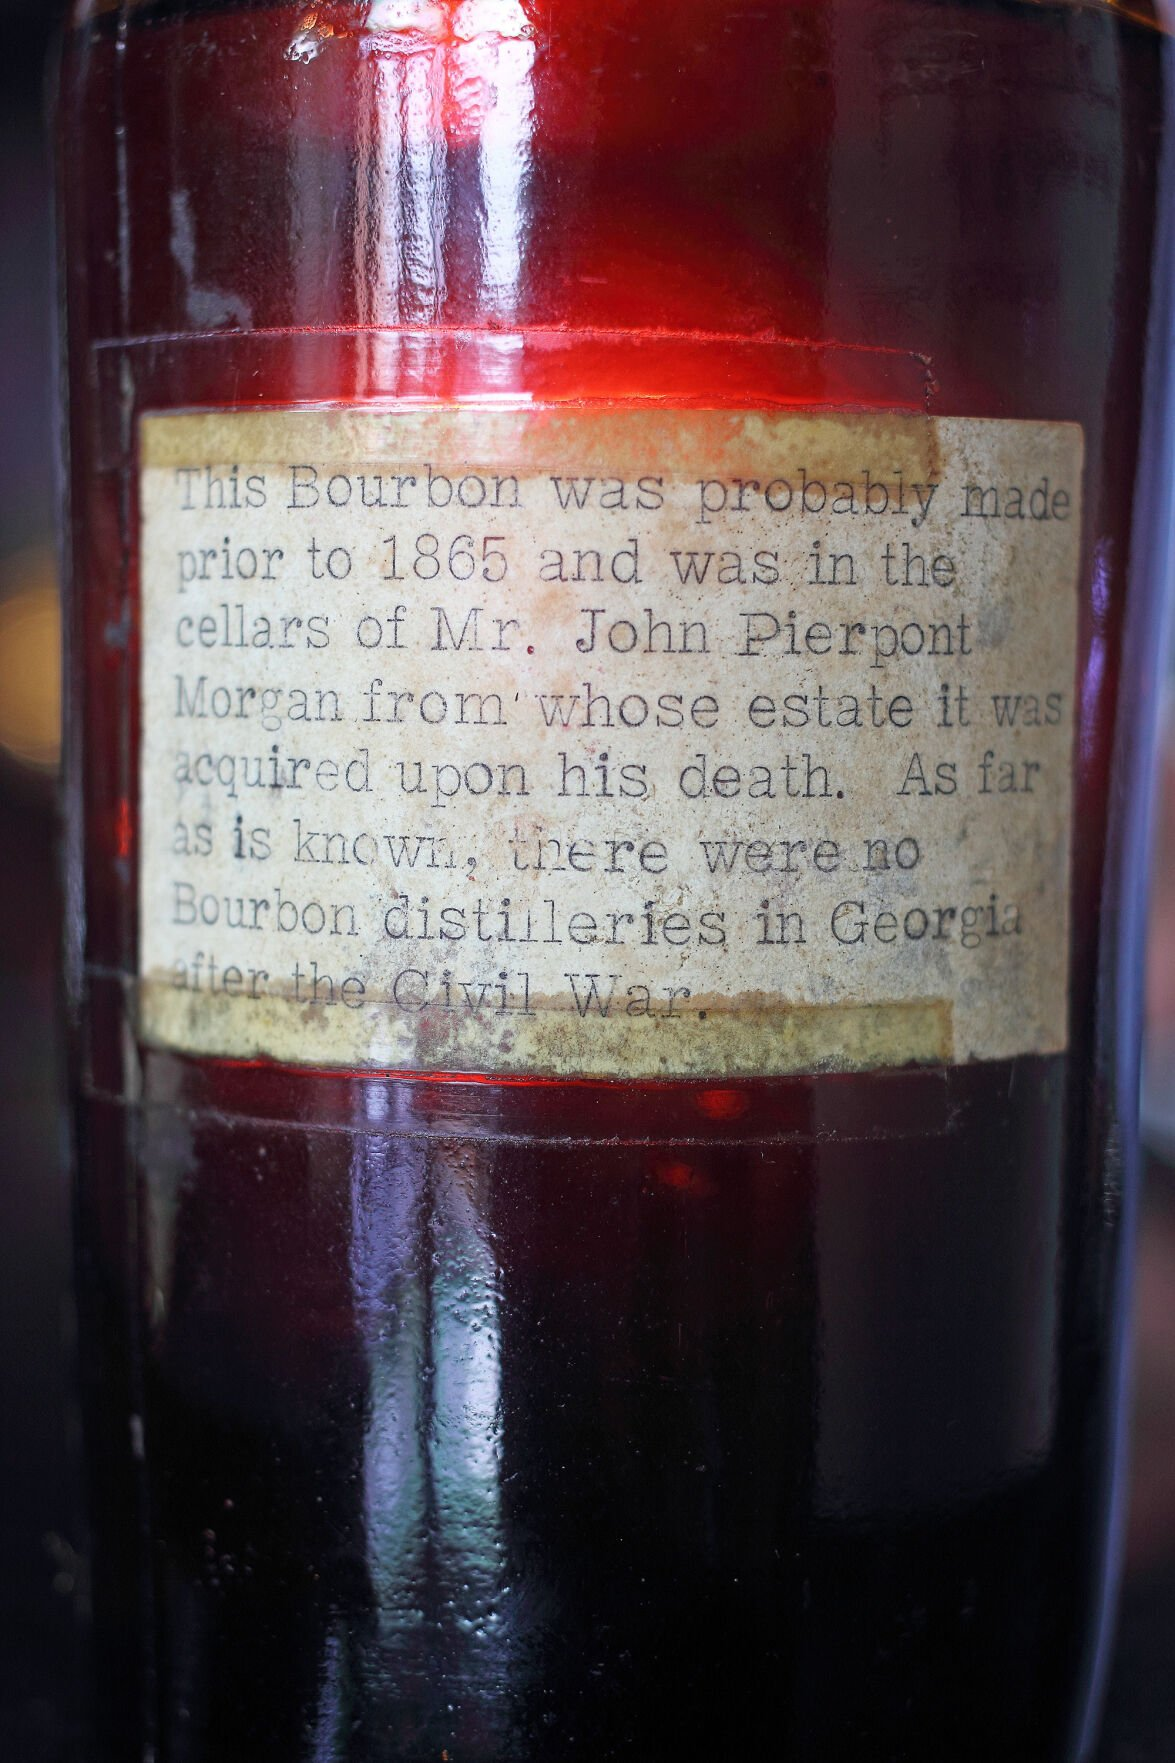 The whiskey was distilled prior to the Civil War and was owned by J.P. Morgan.